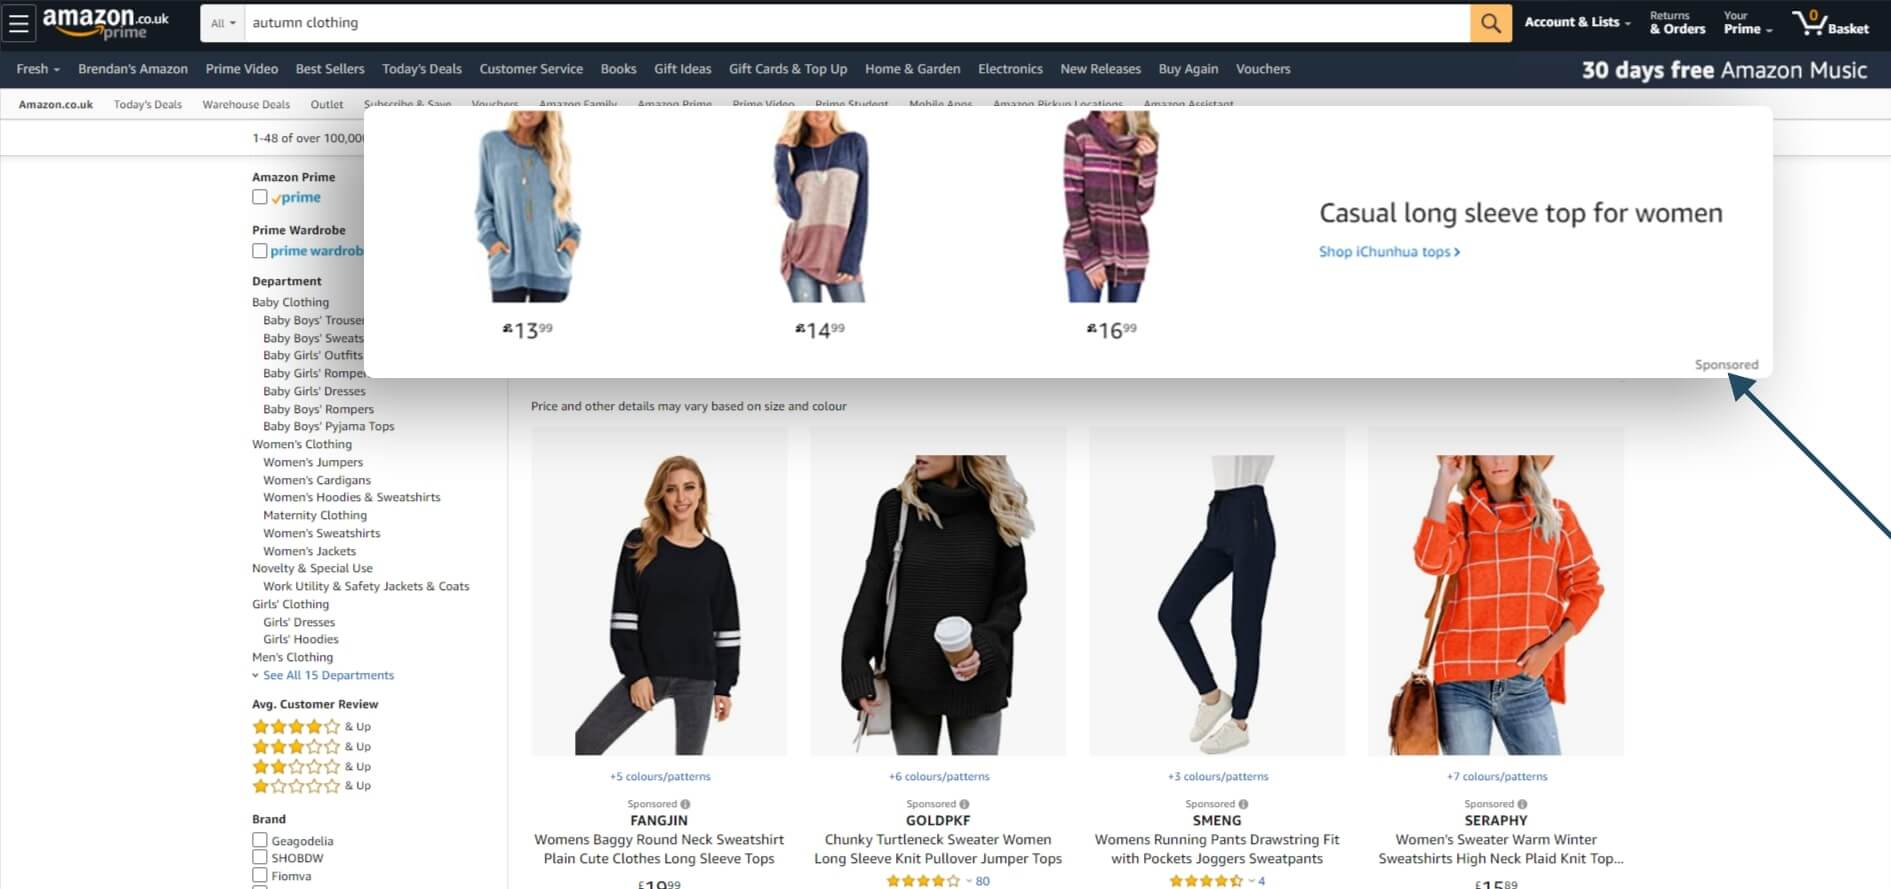 Amazon-co-uk-autumn clothing